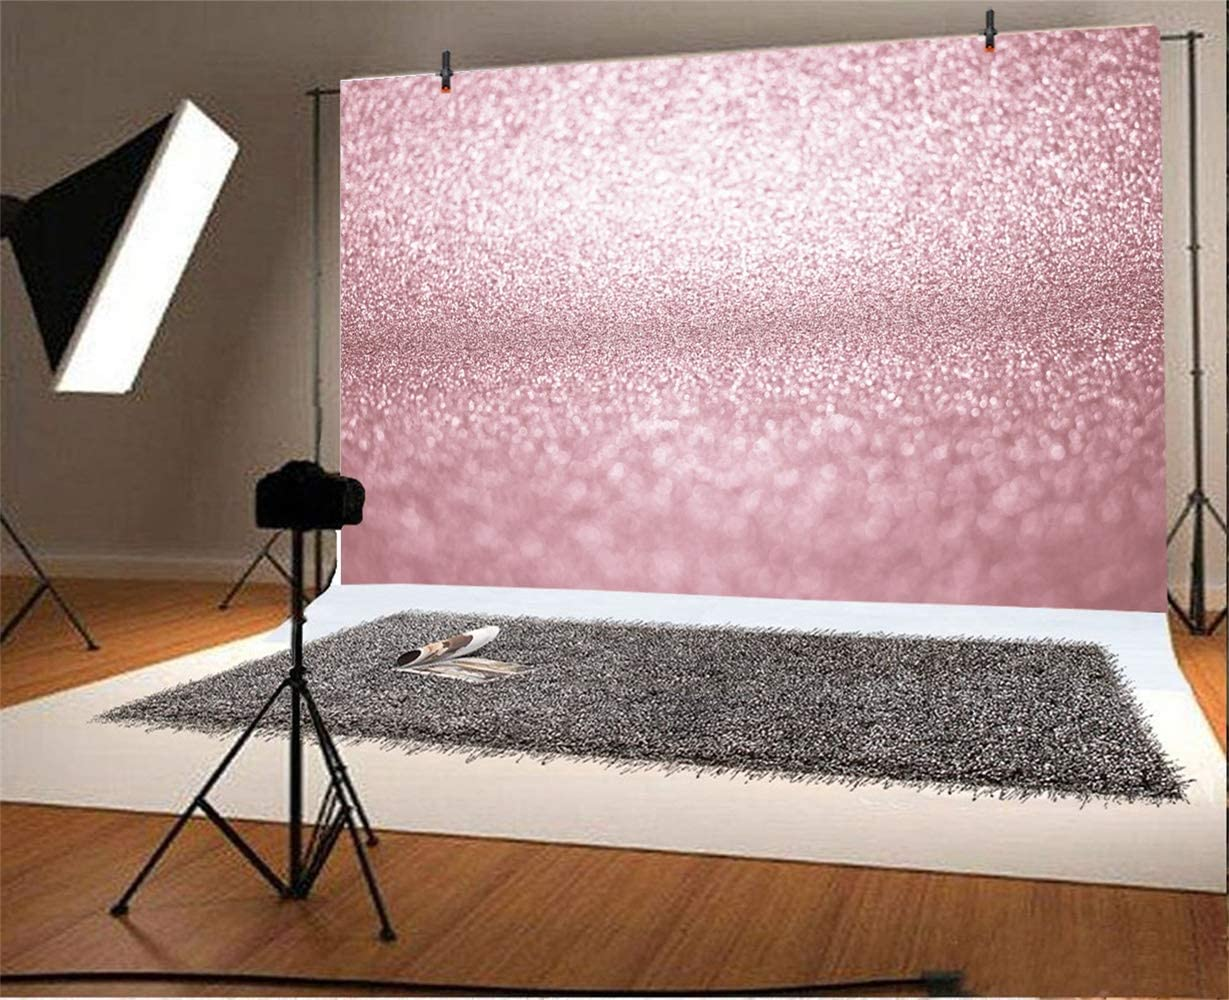 8x6.5ft Dreamlike Bokeh Rose Gold Glitter Backdrop Polyester Abstract Rustic Texture Photography Background Child Kids Newborn Girl Adult Portrait Shoot Studio Photo Props